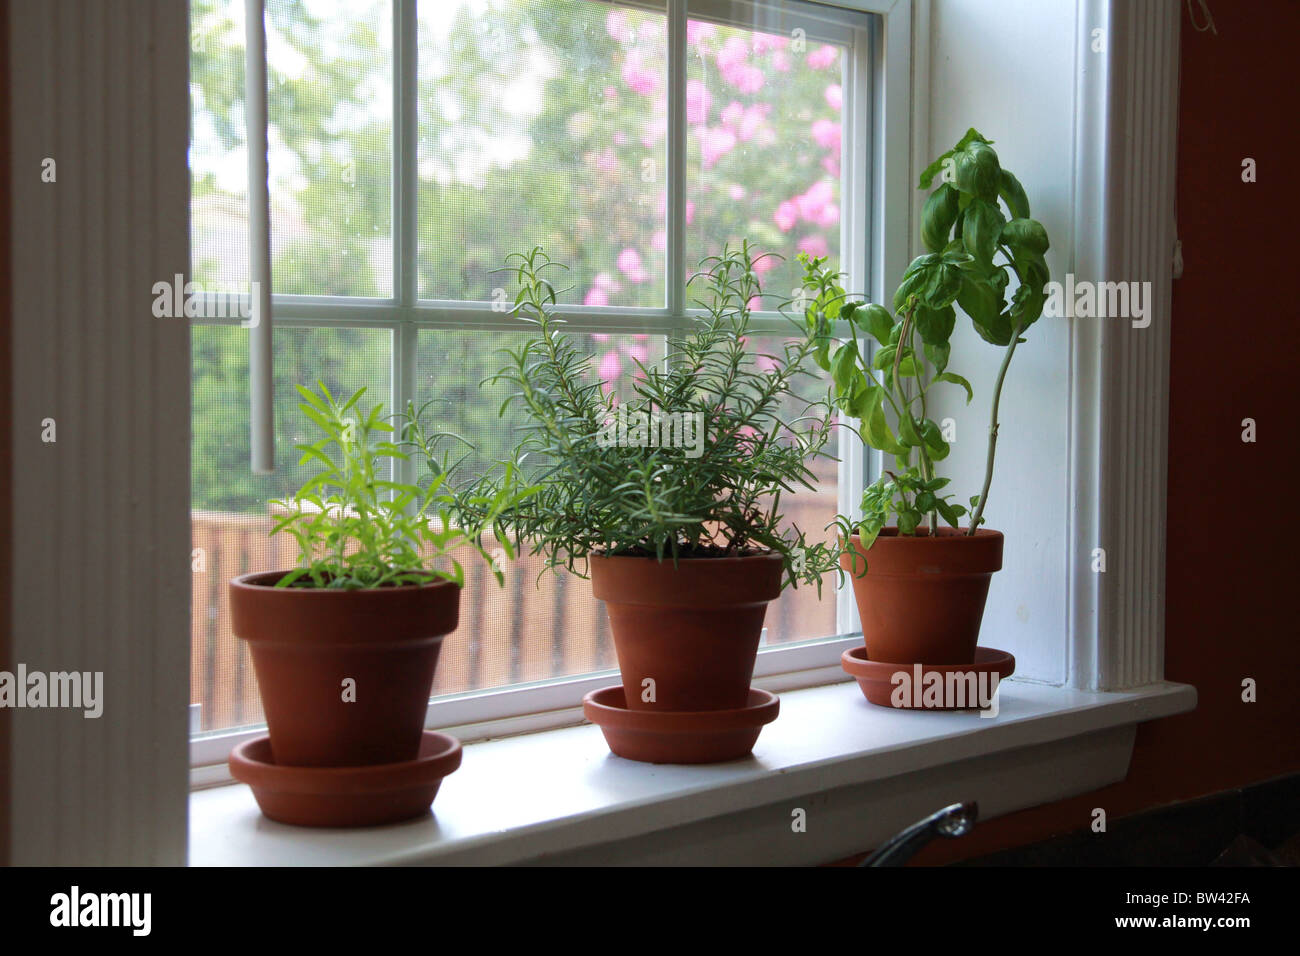 A Windowsill Herb Garden With Lavender Rosemary And Basil Stock Photo Alamy